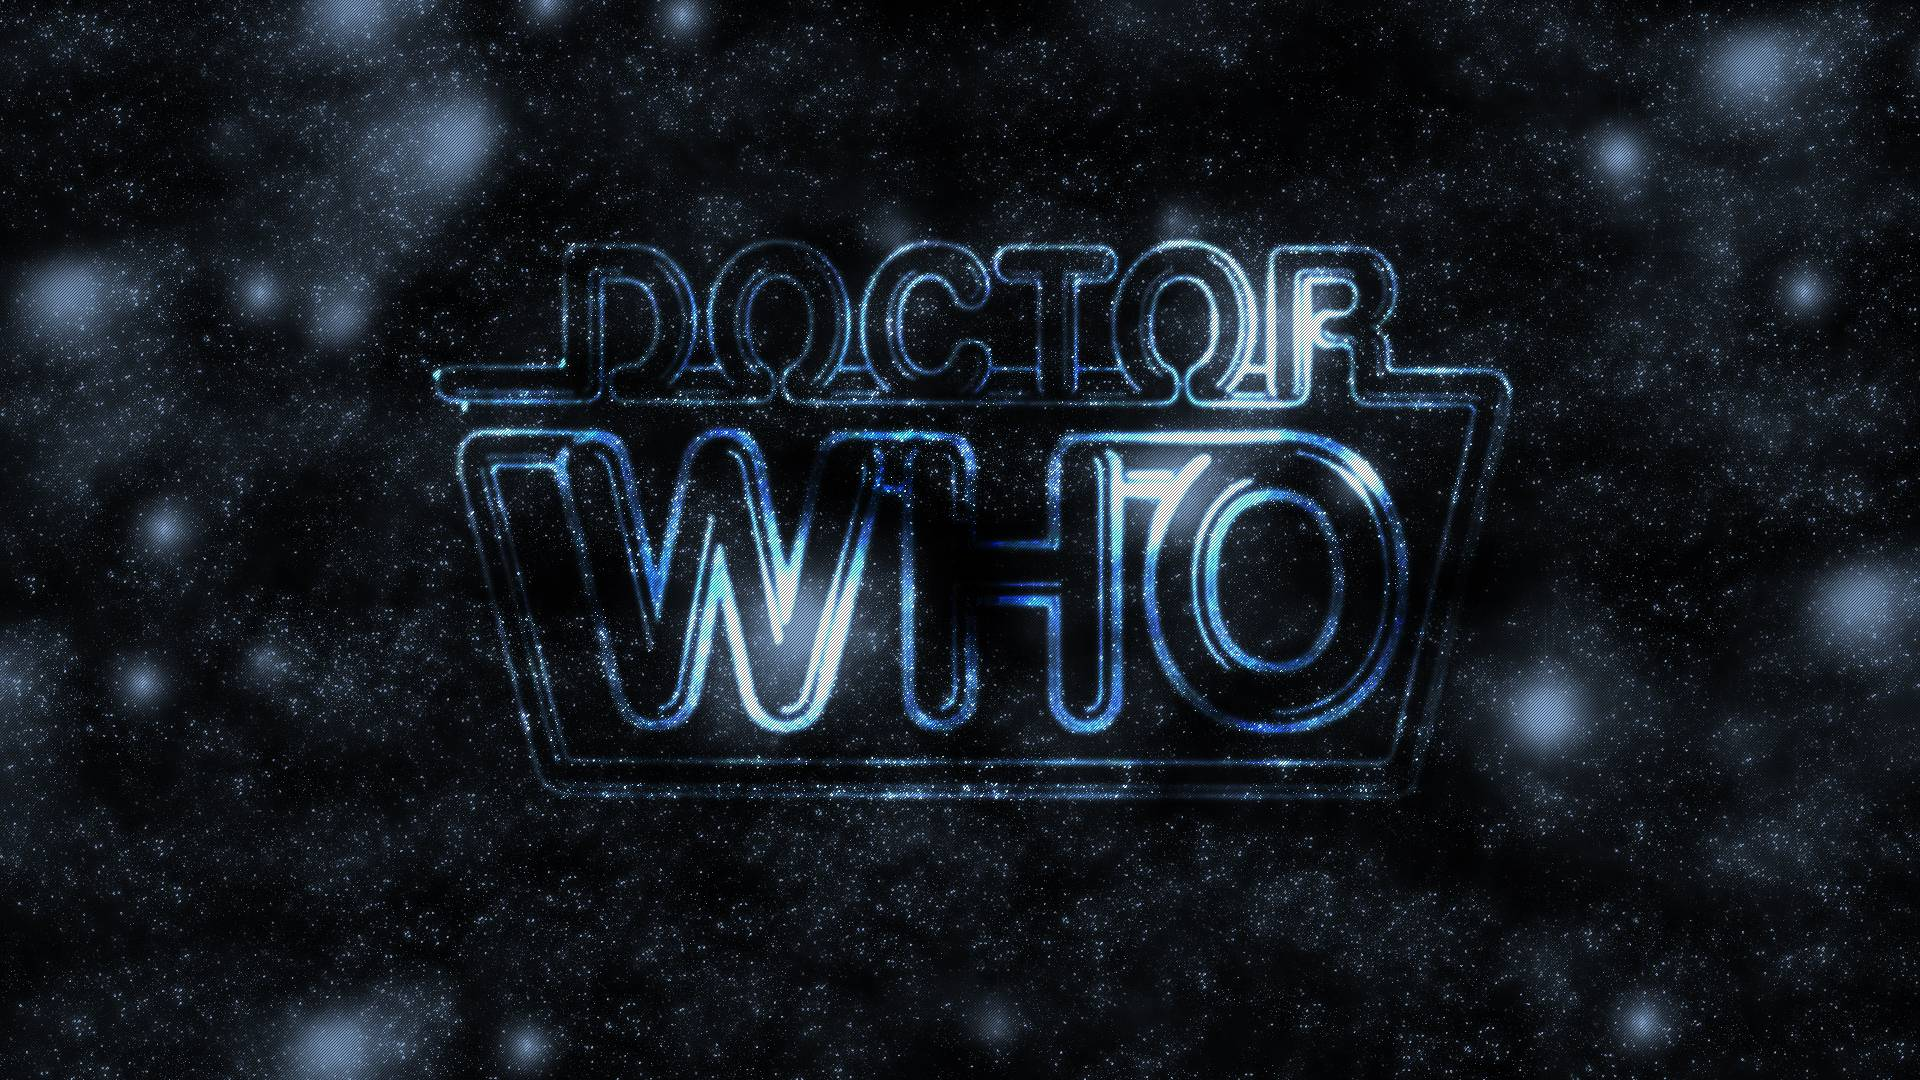 The Doctor In Stars HD Wallpaper